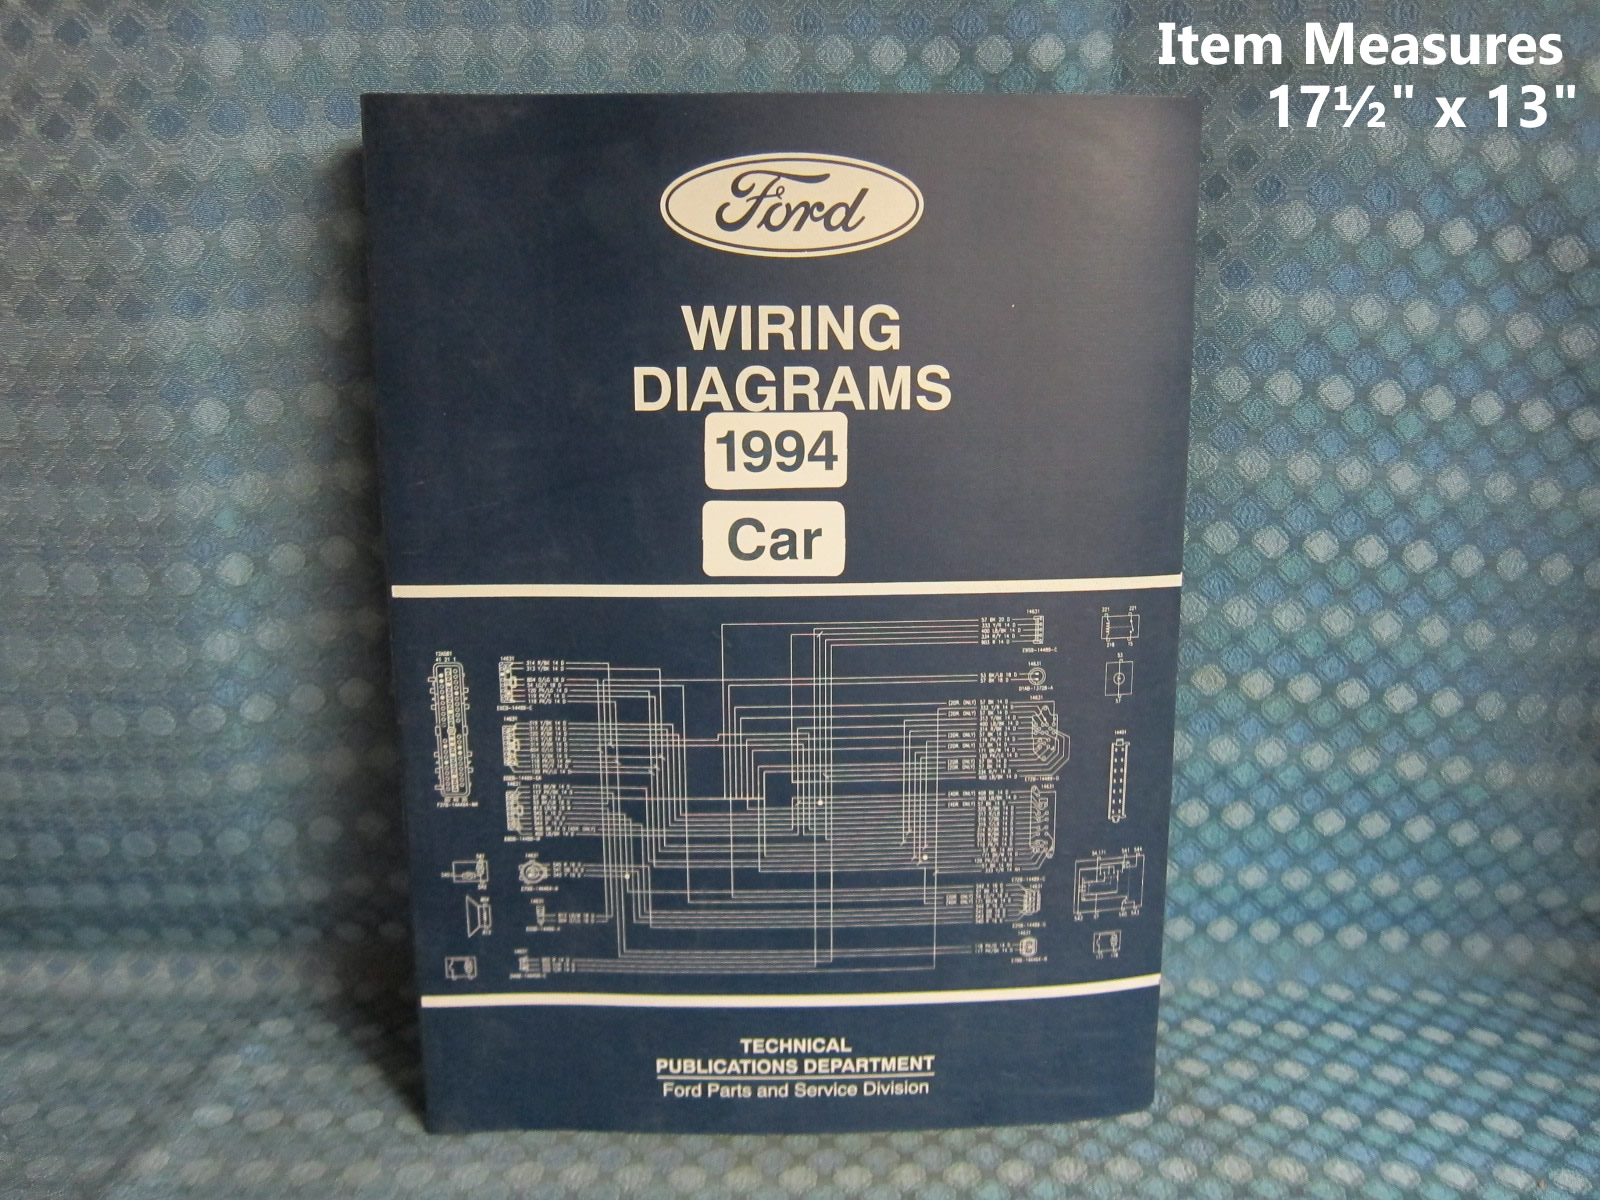 1994 Ford Lincoln Mercury Car Original Wiring Diagrams Manual Mustang Cougar